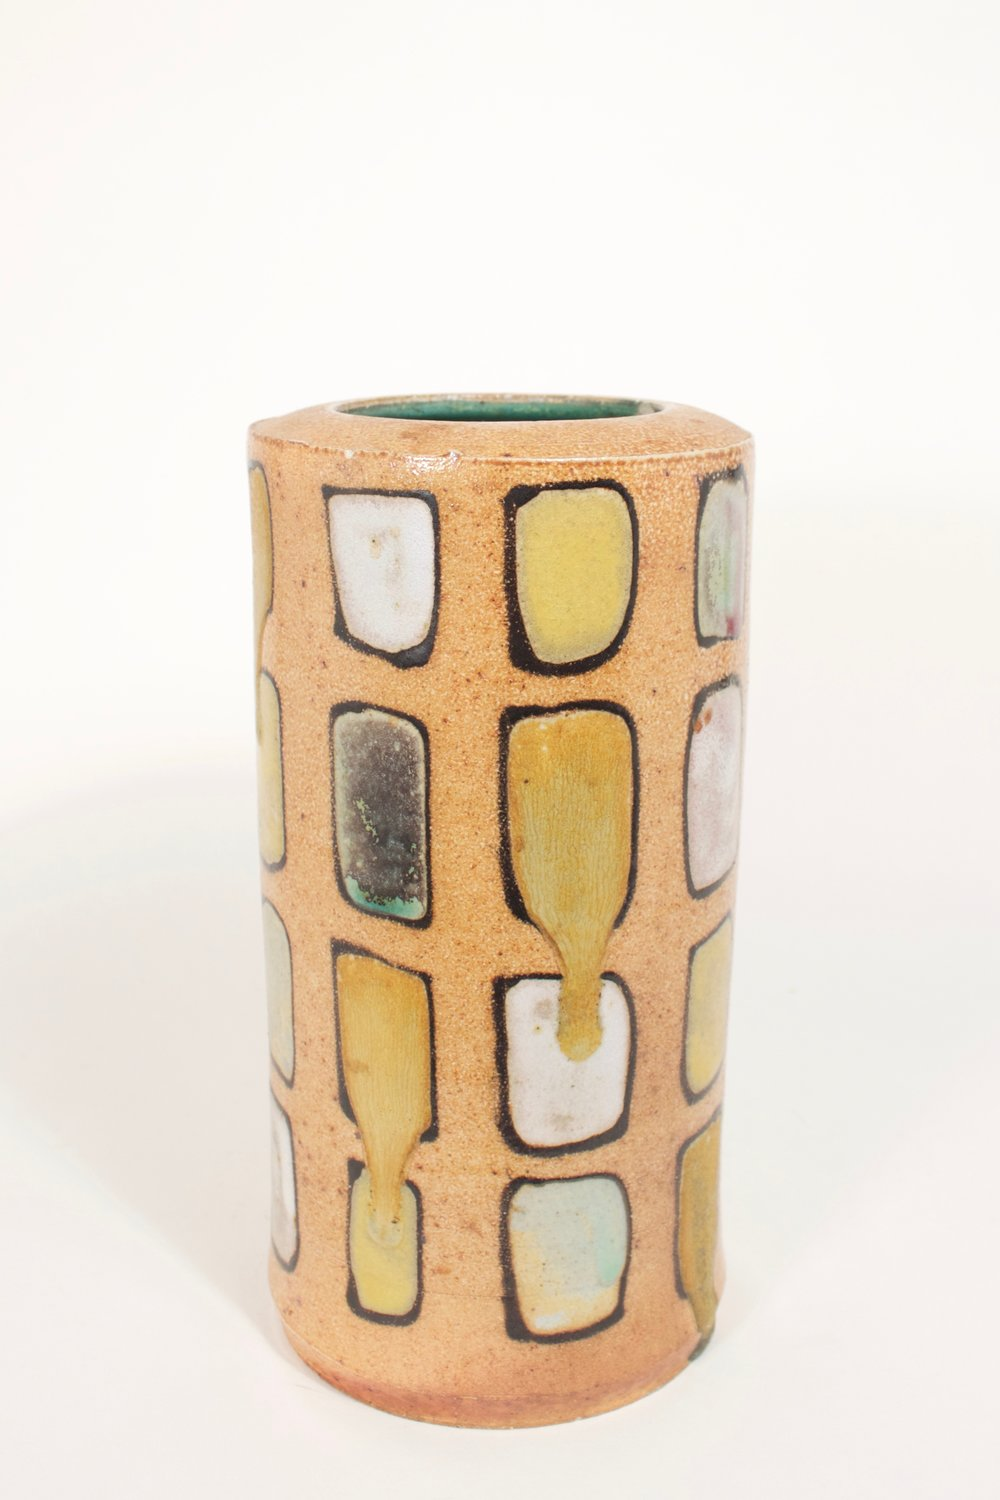 Wood fired vessel, 2004